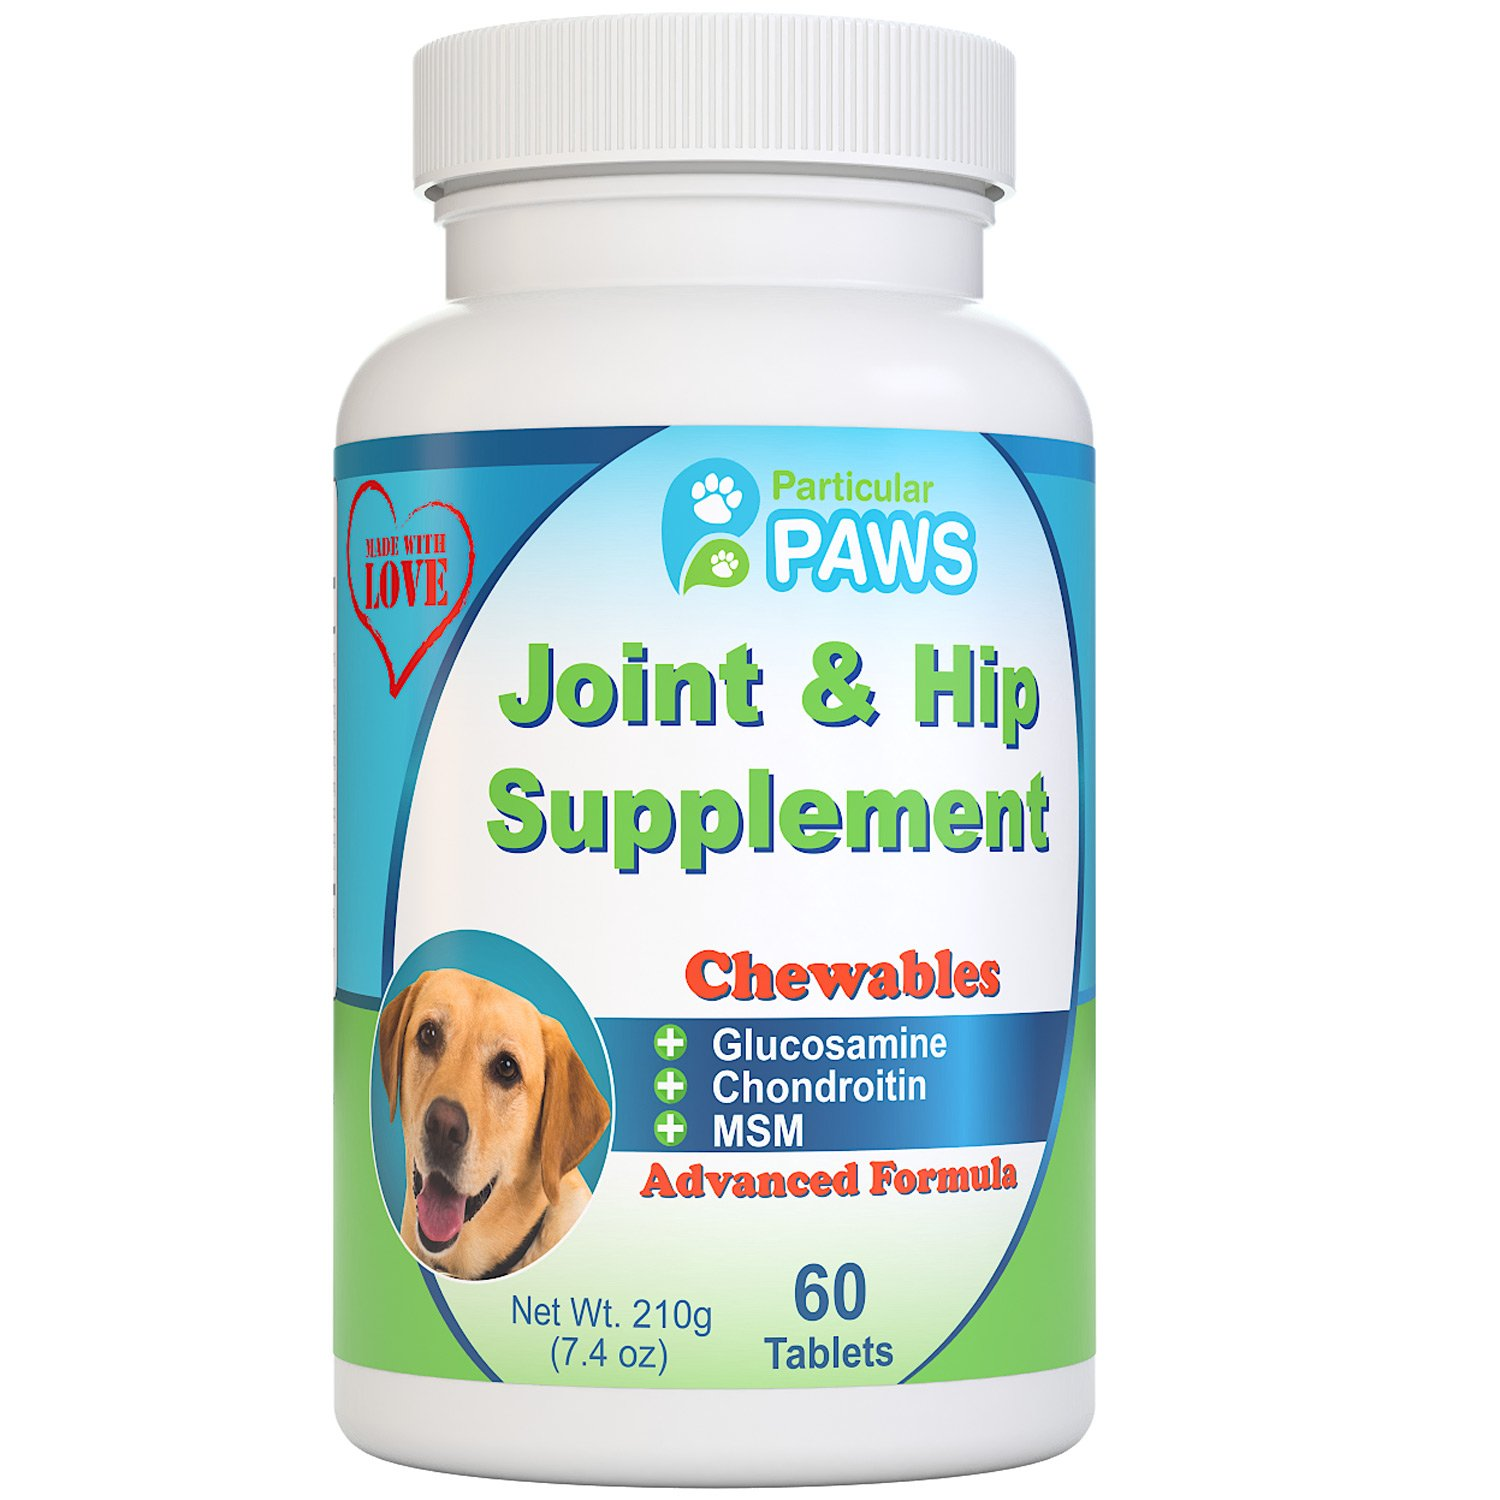 Particular Paws Glucosamine for Dogs Advanced Joint and Hip Supplement with MSM, Chondroitin, Vitamin